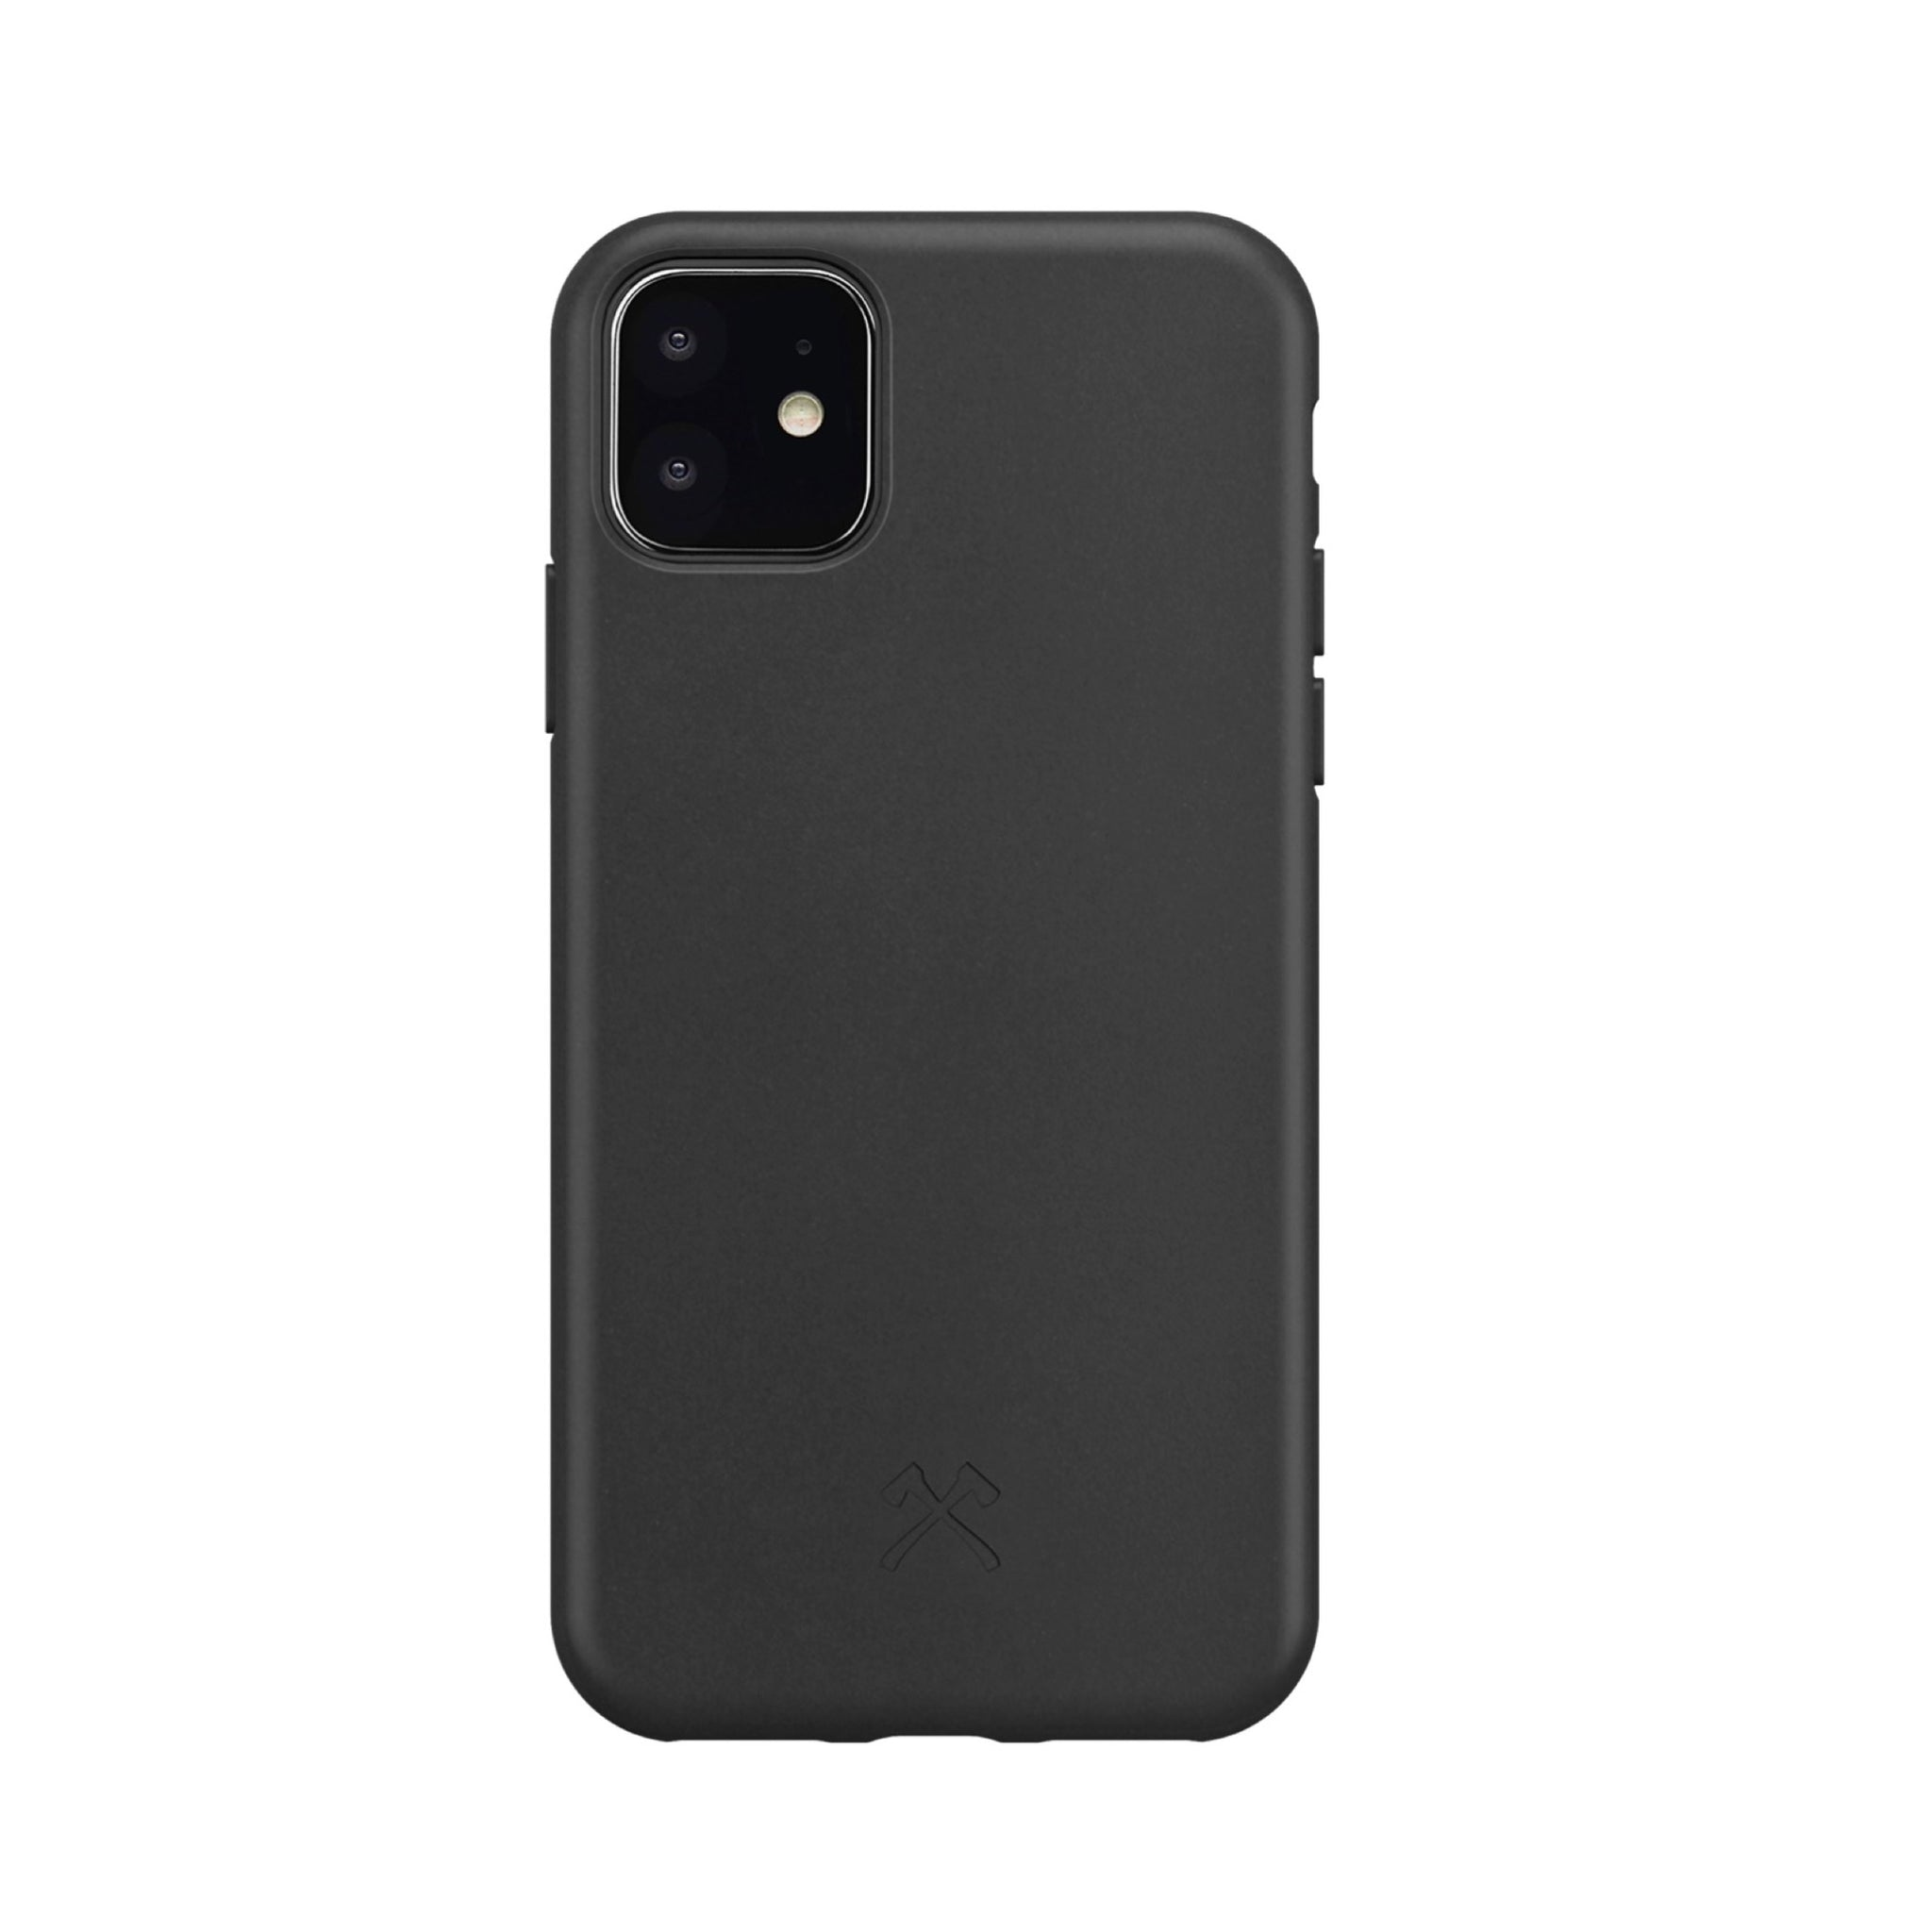 Woodcessories BioCase for iPhone 11 - Black